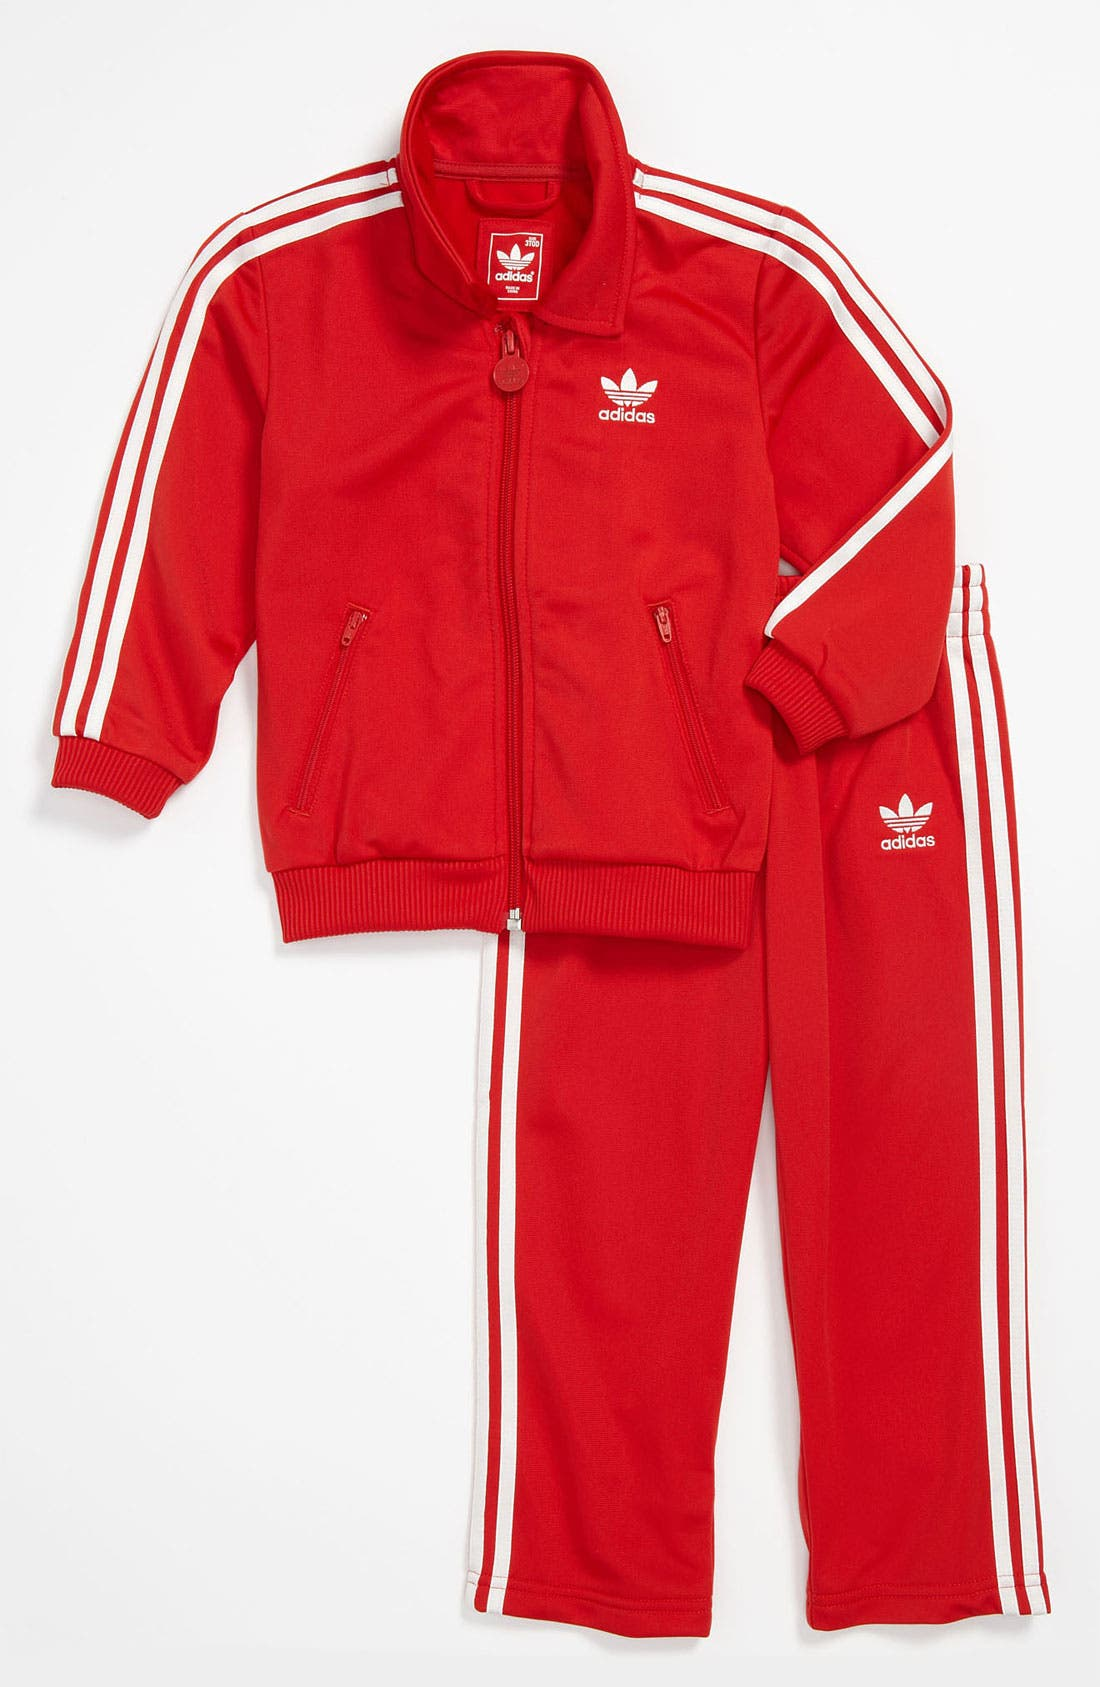 Alternate Image 1 Selected - adidas 'Firebird' Jacket & Pants (Infant)